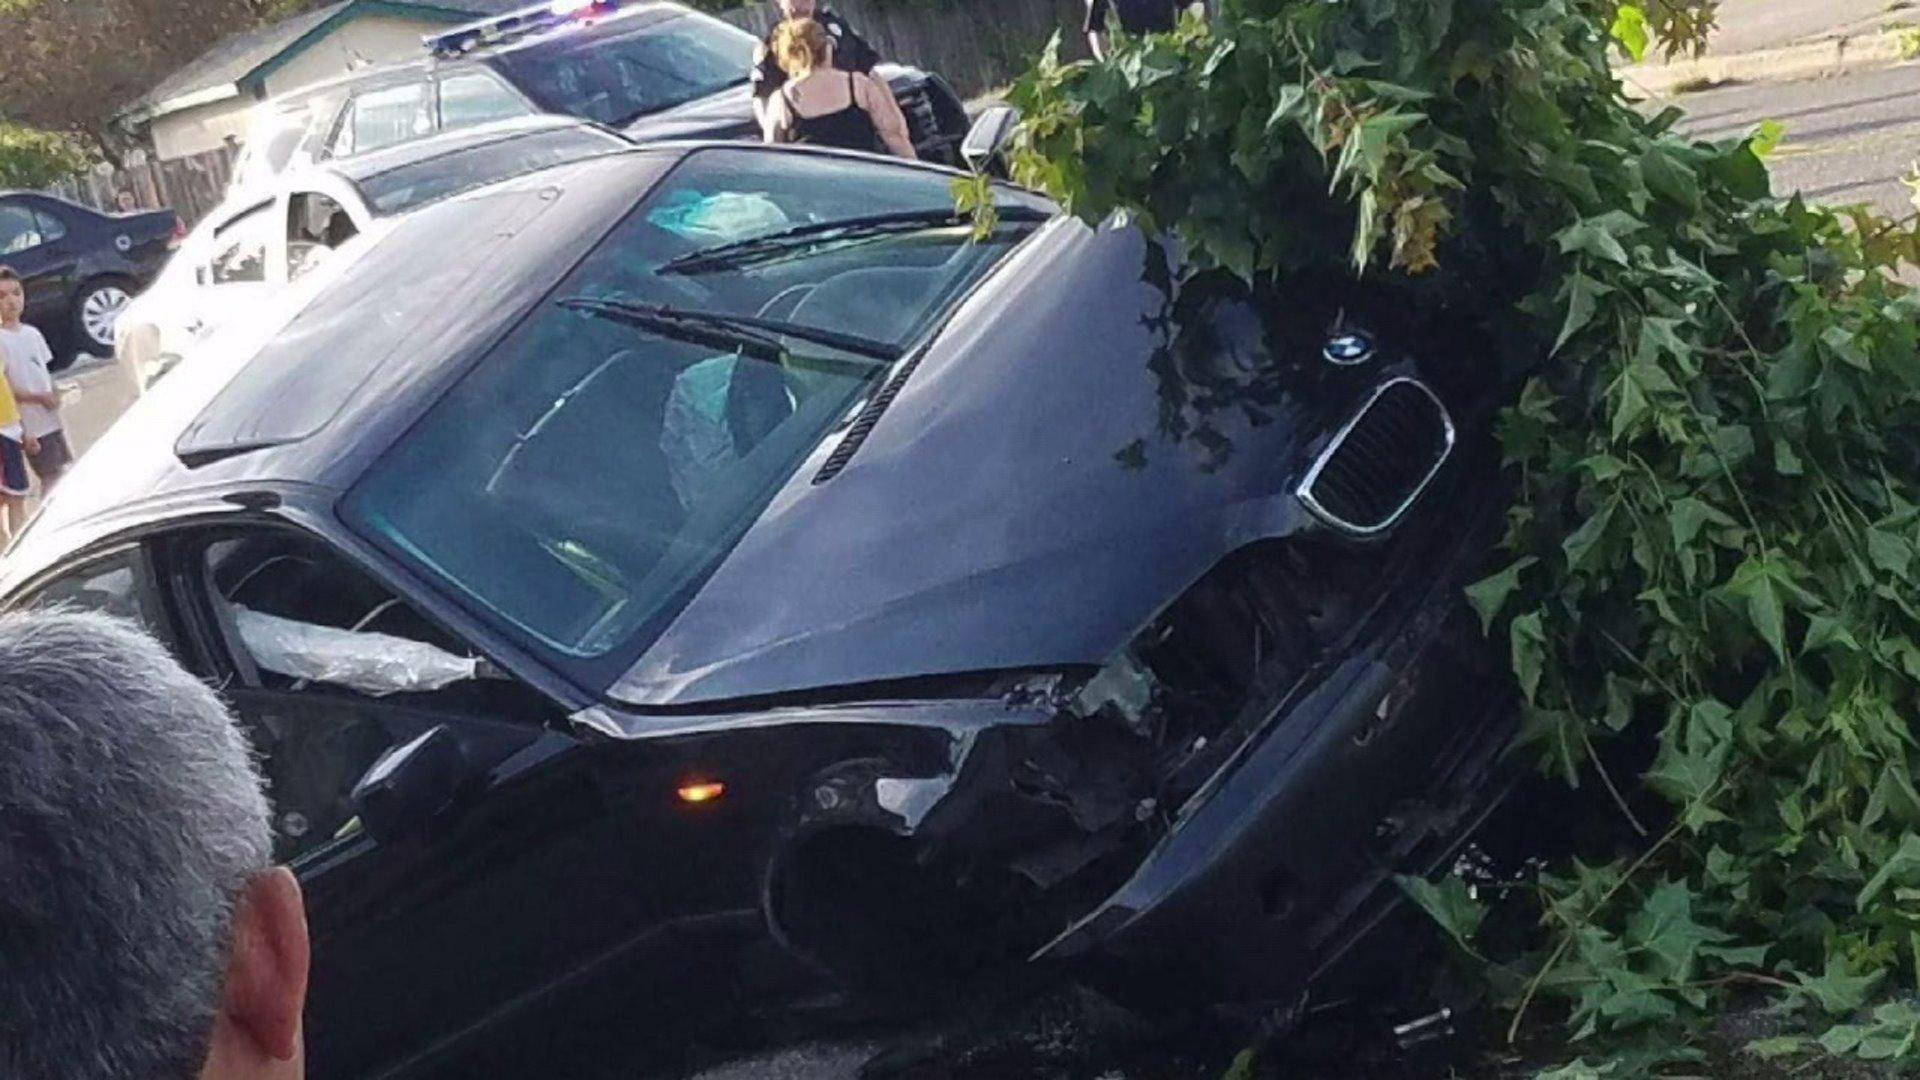 Parents Tackle Suspected Drunk Driver After Accident Near Children